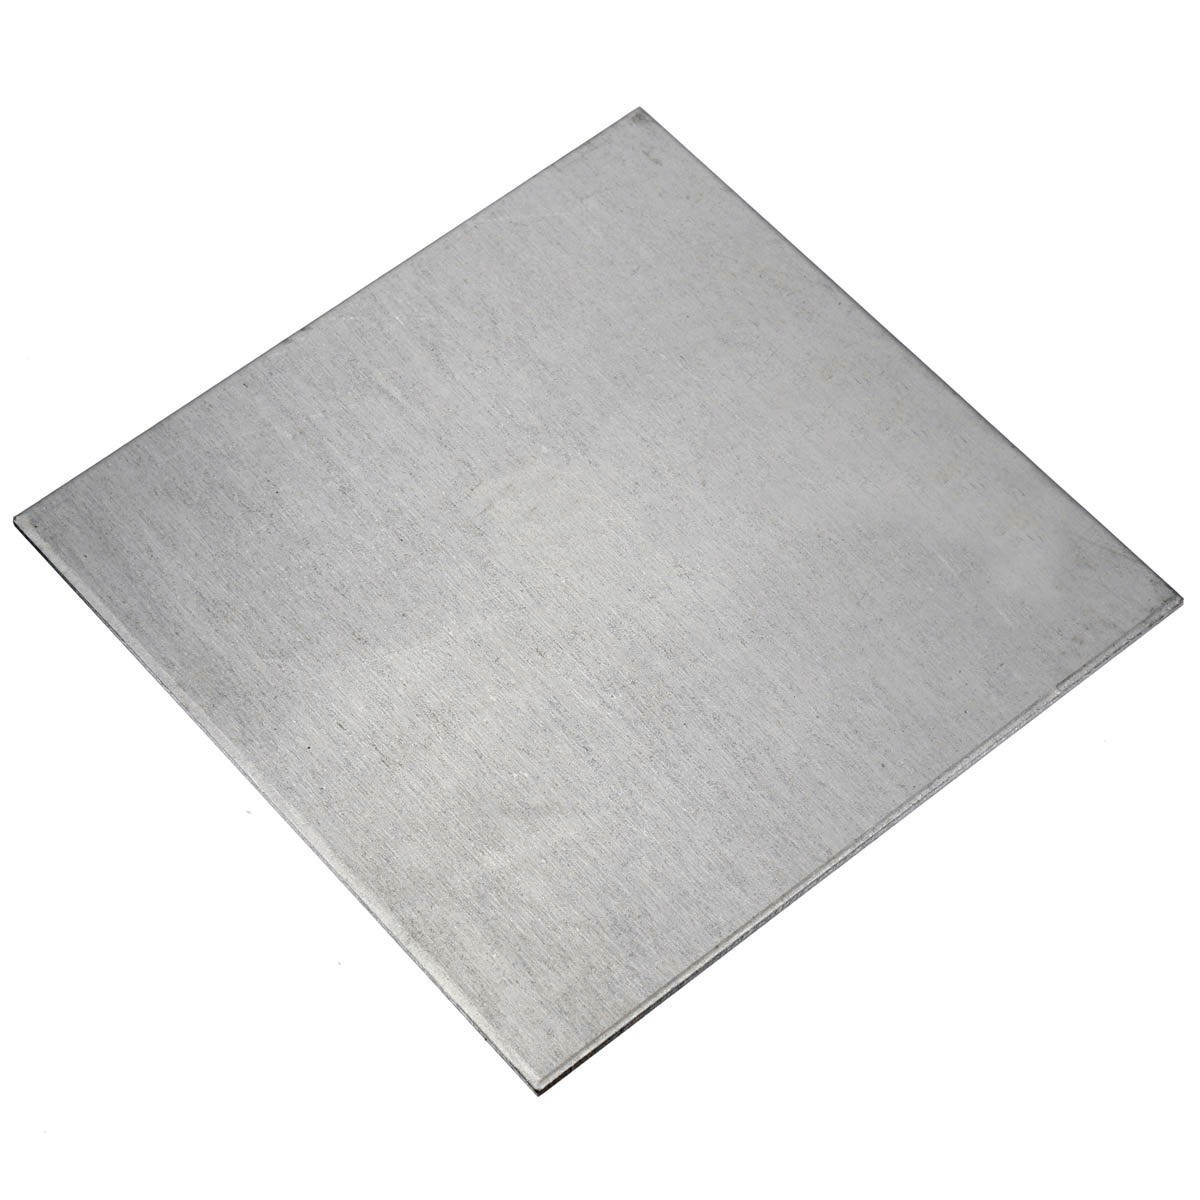 1pc New Gr2 Grade 2 ASTM B265 Titanium Ti Plate Sheet 100*100*2mm 4*4*1inch Power Tool